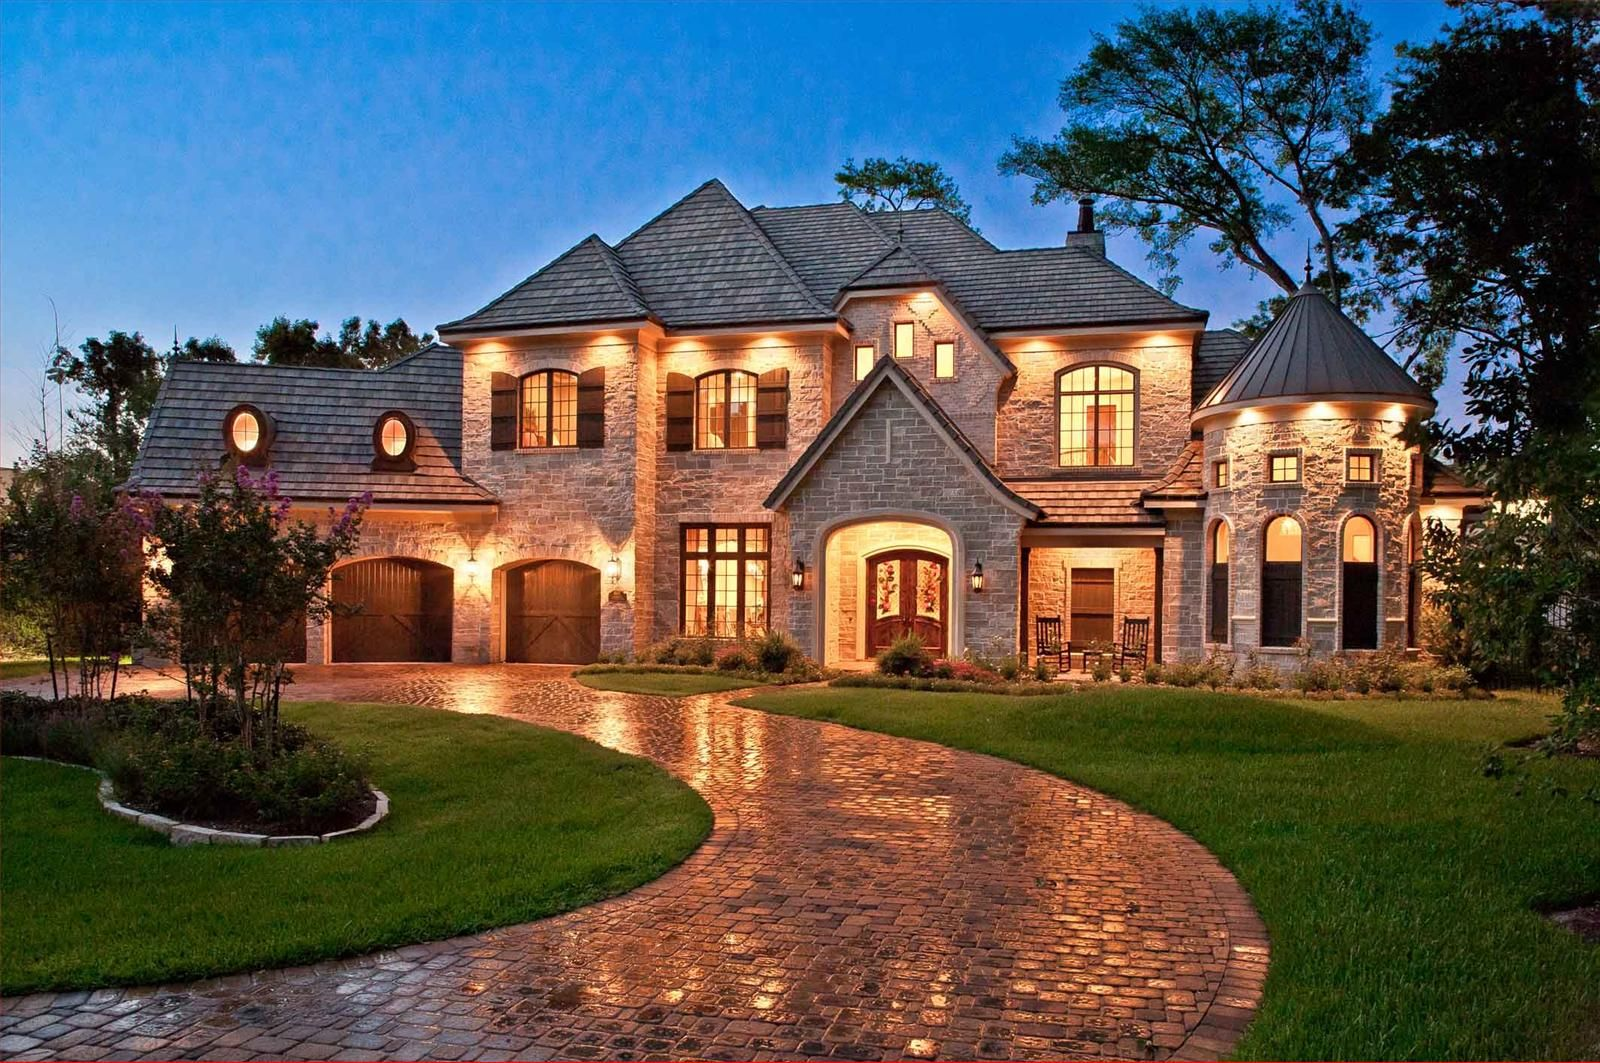 Gorgeous French Country House Design Exterior With Large Home Shape In Luxury